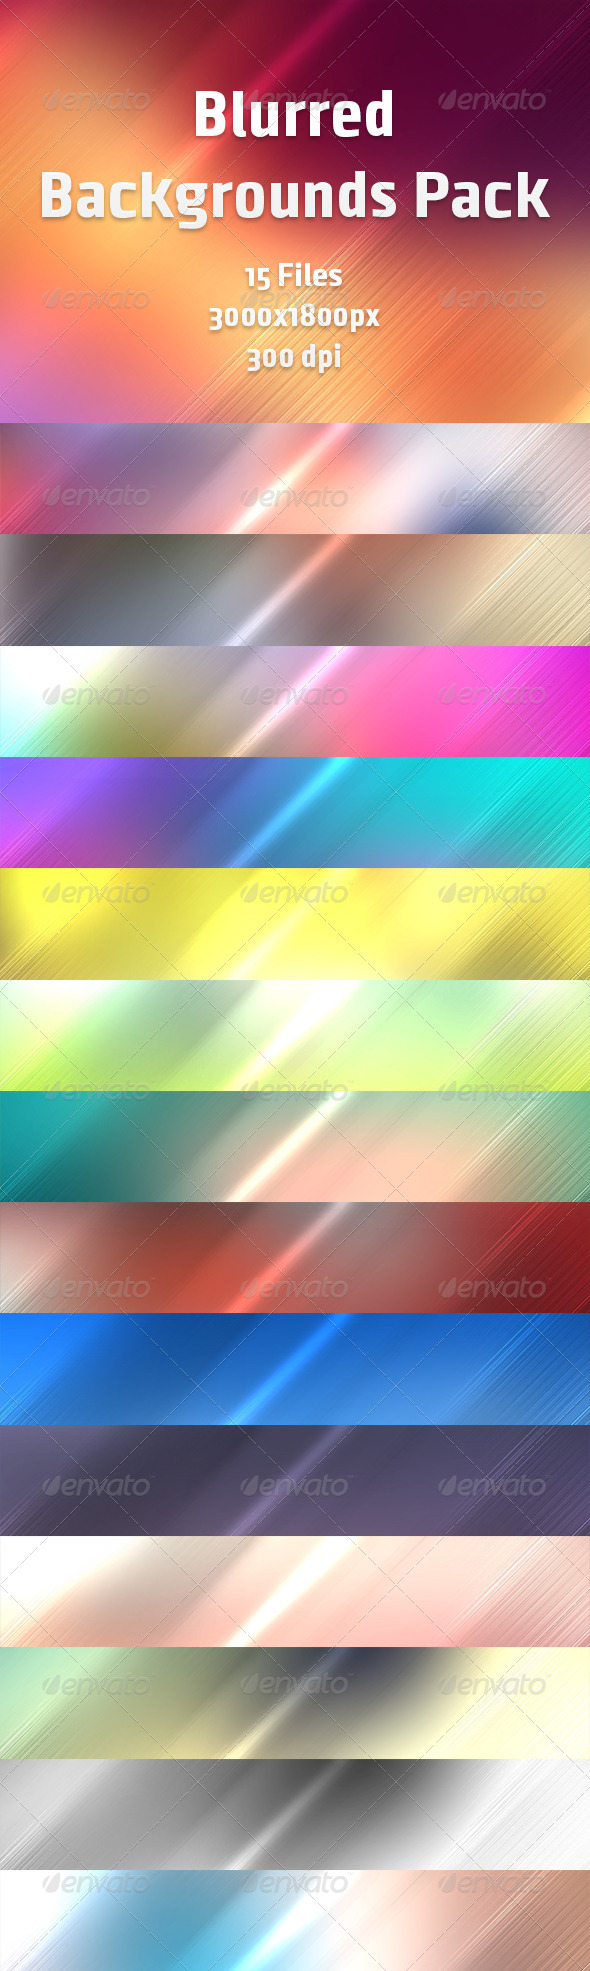 Blurred Backgrounds Pack - Backgrounds Graphics